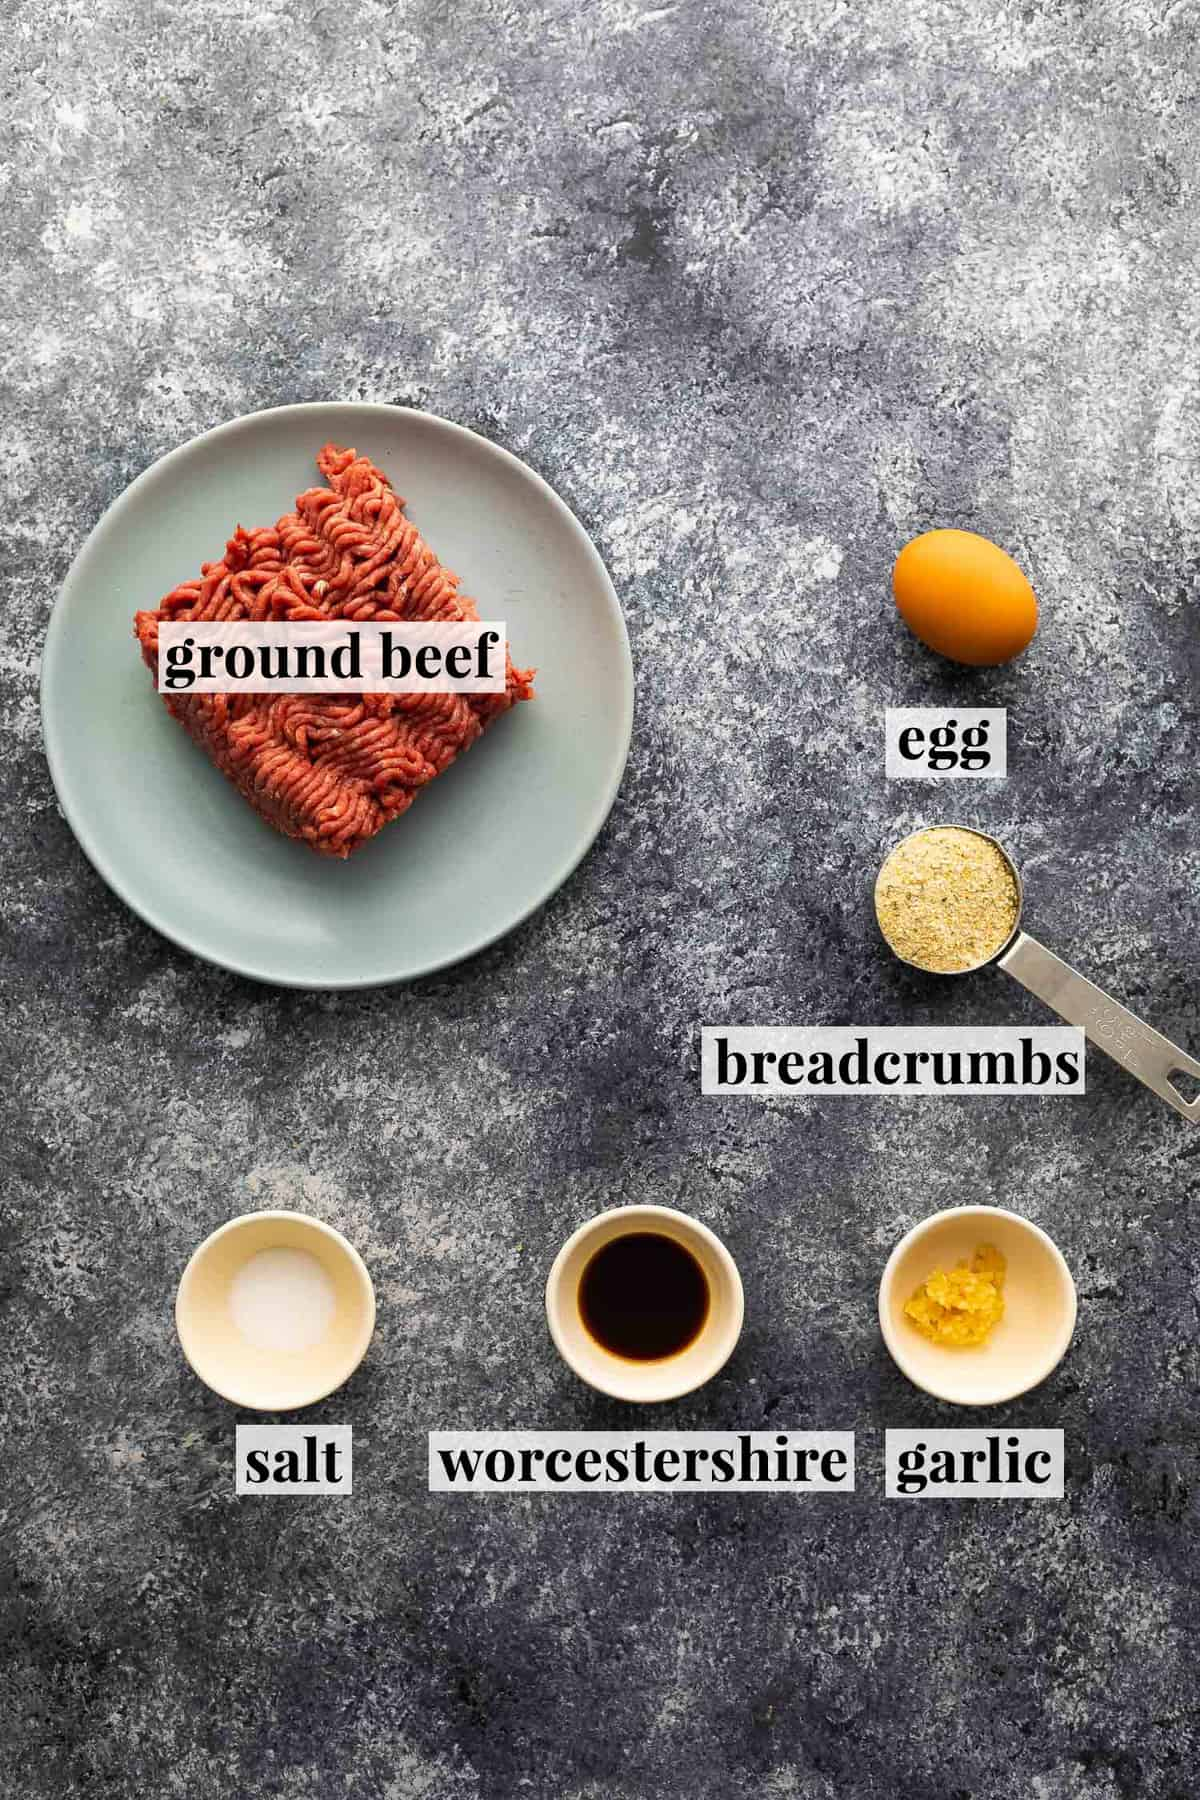 Ingredients for a fried burger (with label)